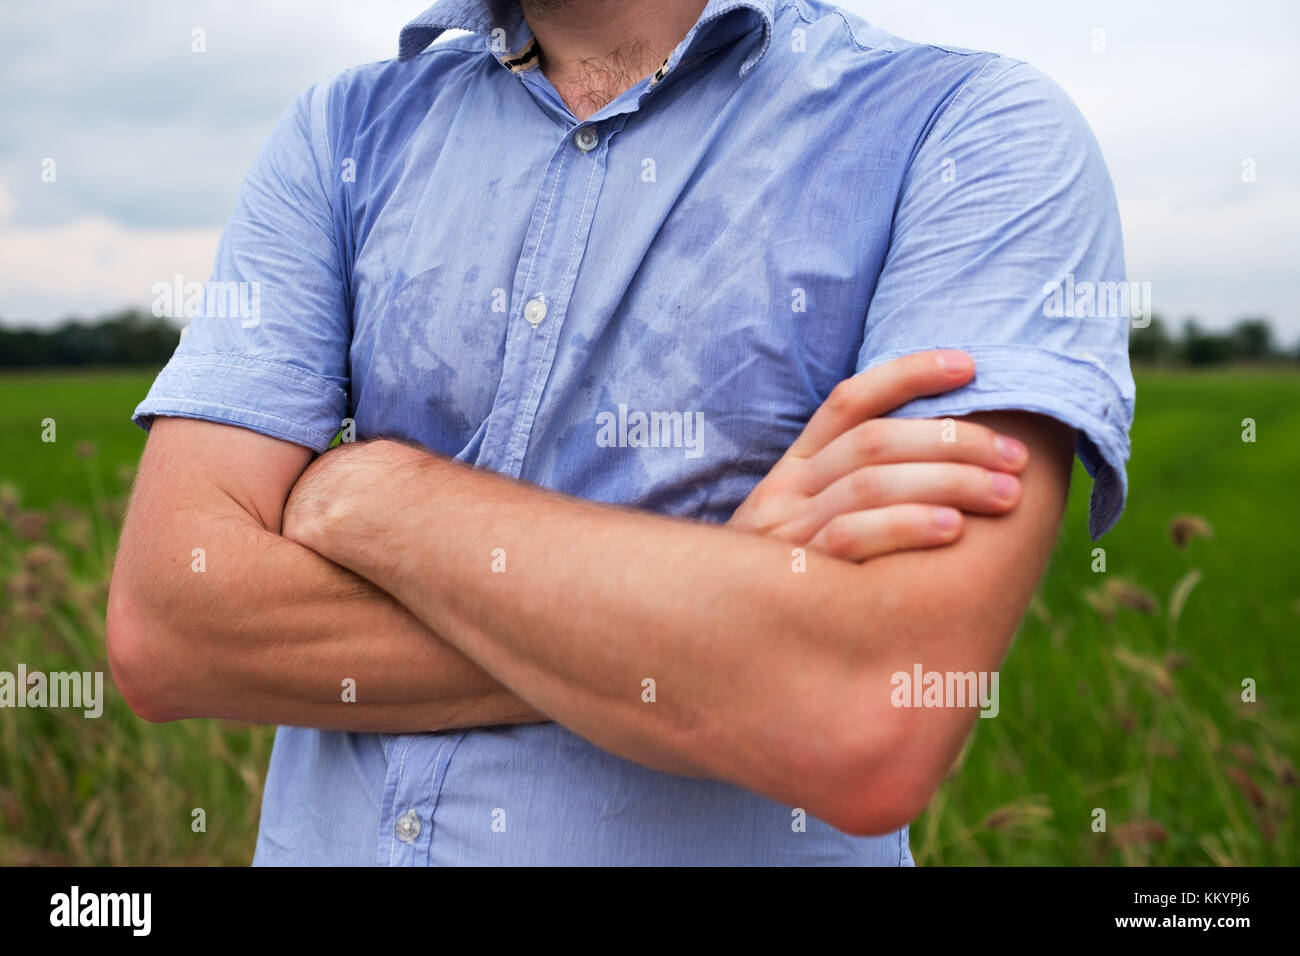 Man with hyperhidrosis sweating very badly under armpit in blue shirt, isolated on grey - Stock Image